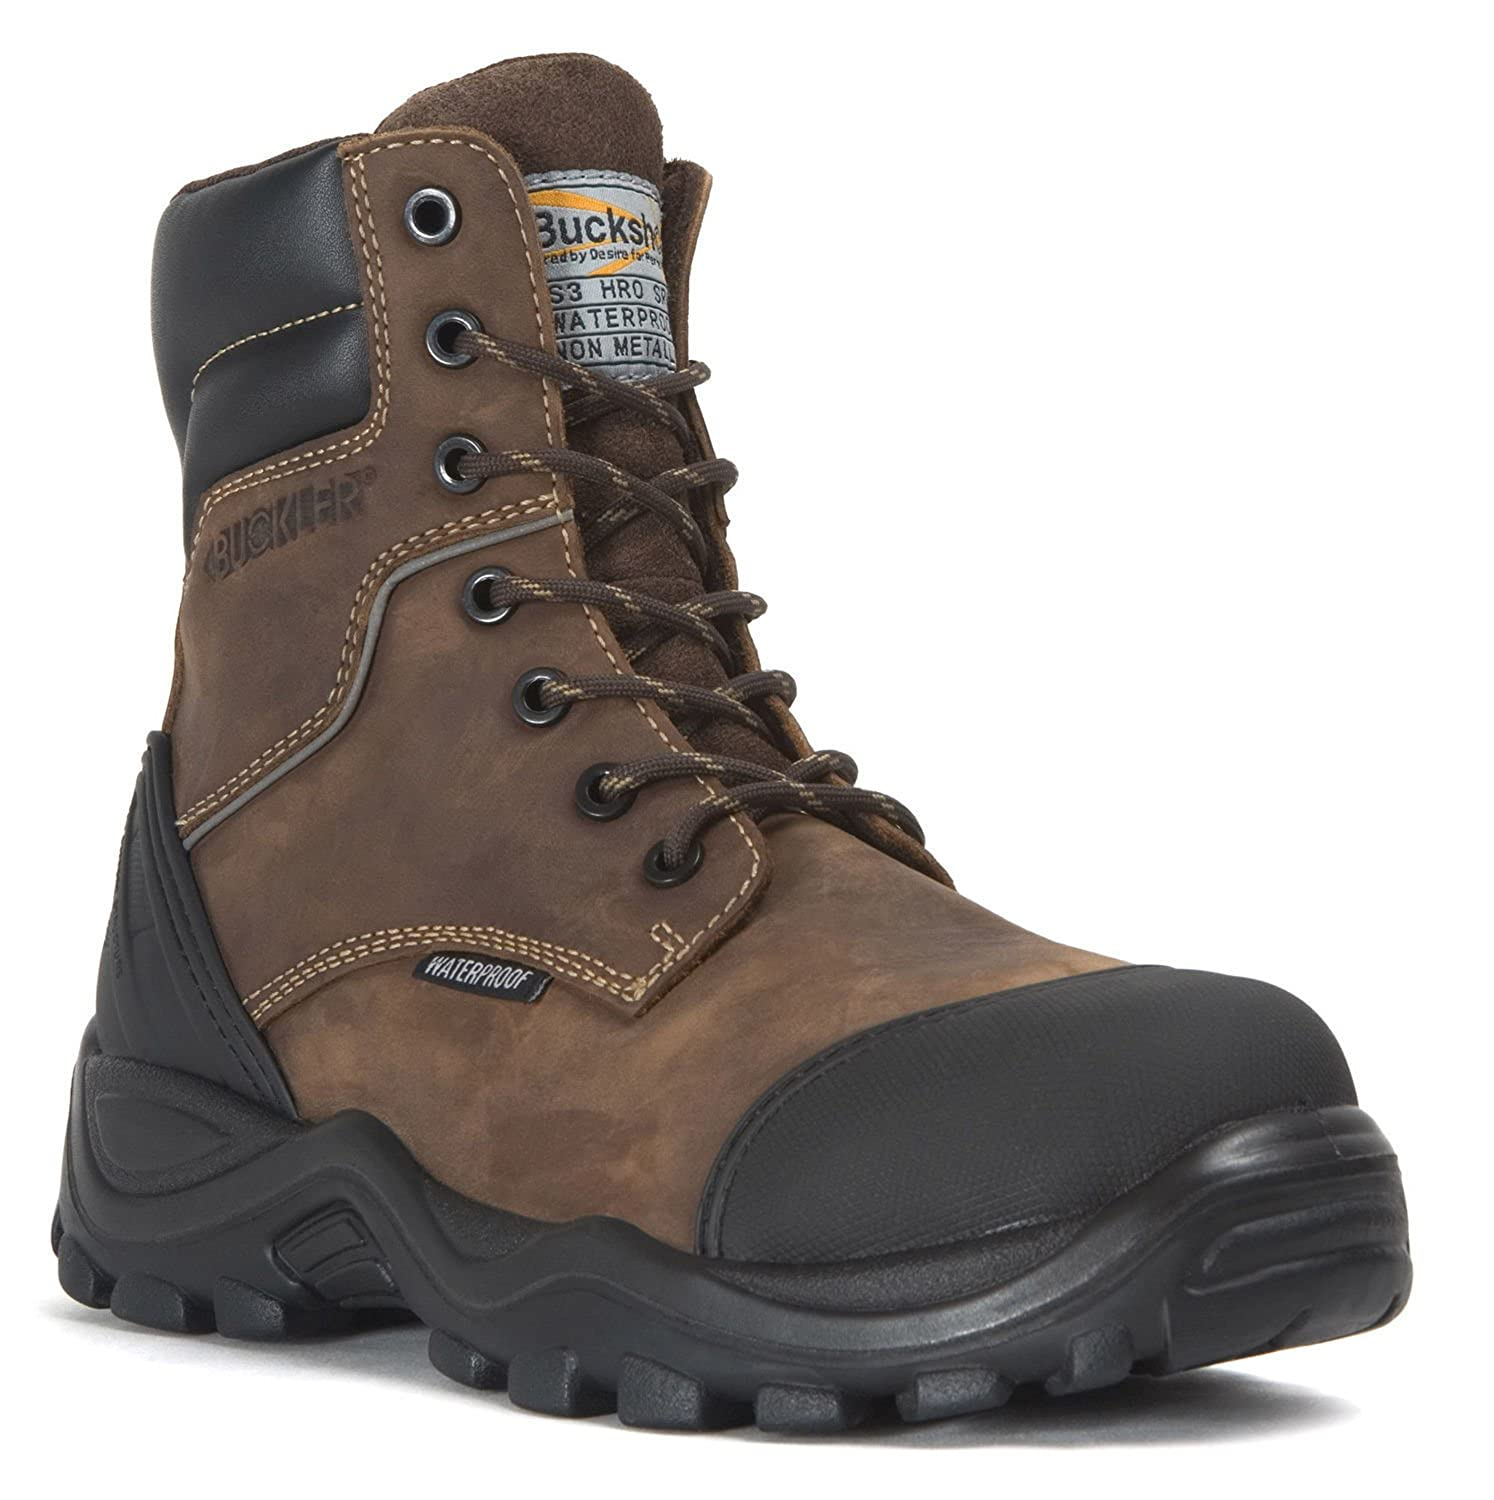 5d772cb5c4b Buckler BSH008WPNM Buckshot Dark Brown Lace/Zip Safety Work Boots | UK Size  6-13